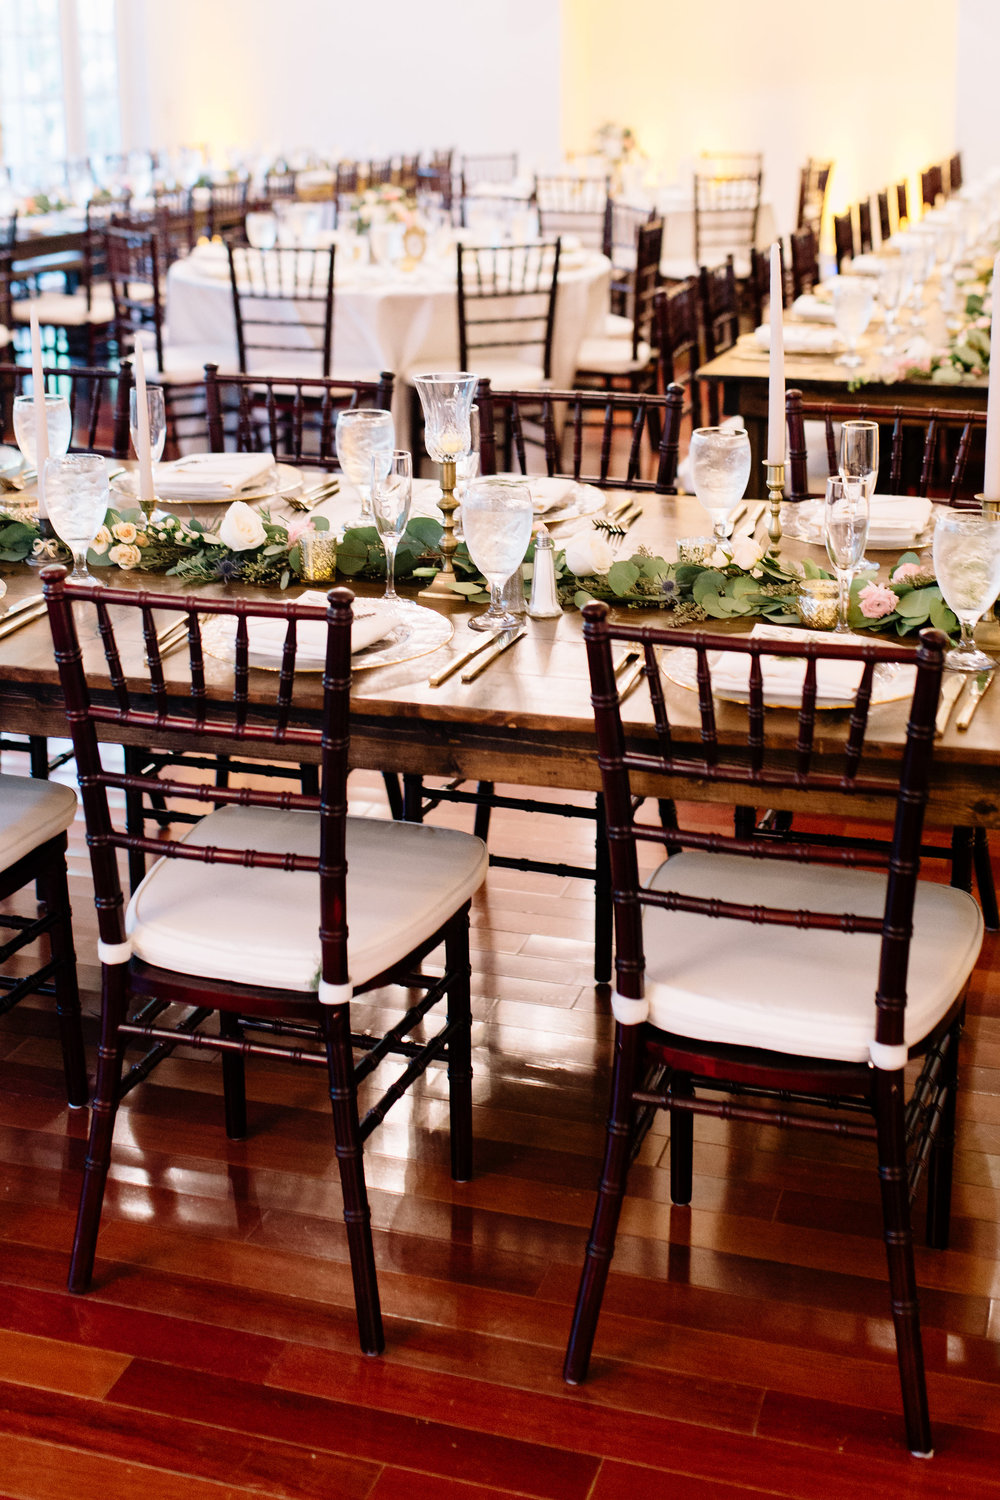 Wedding reception with wooden farm tables